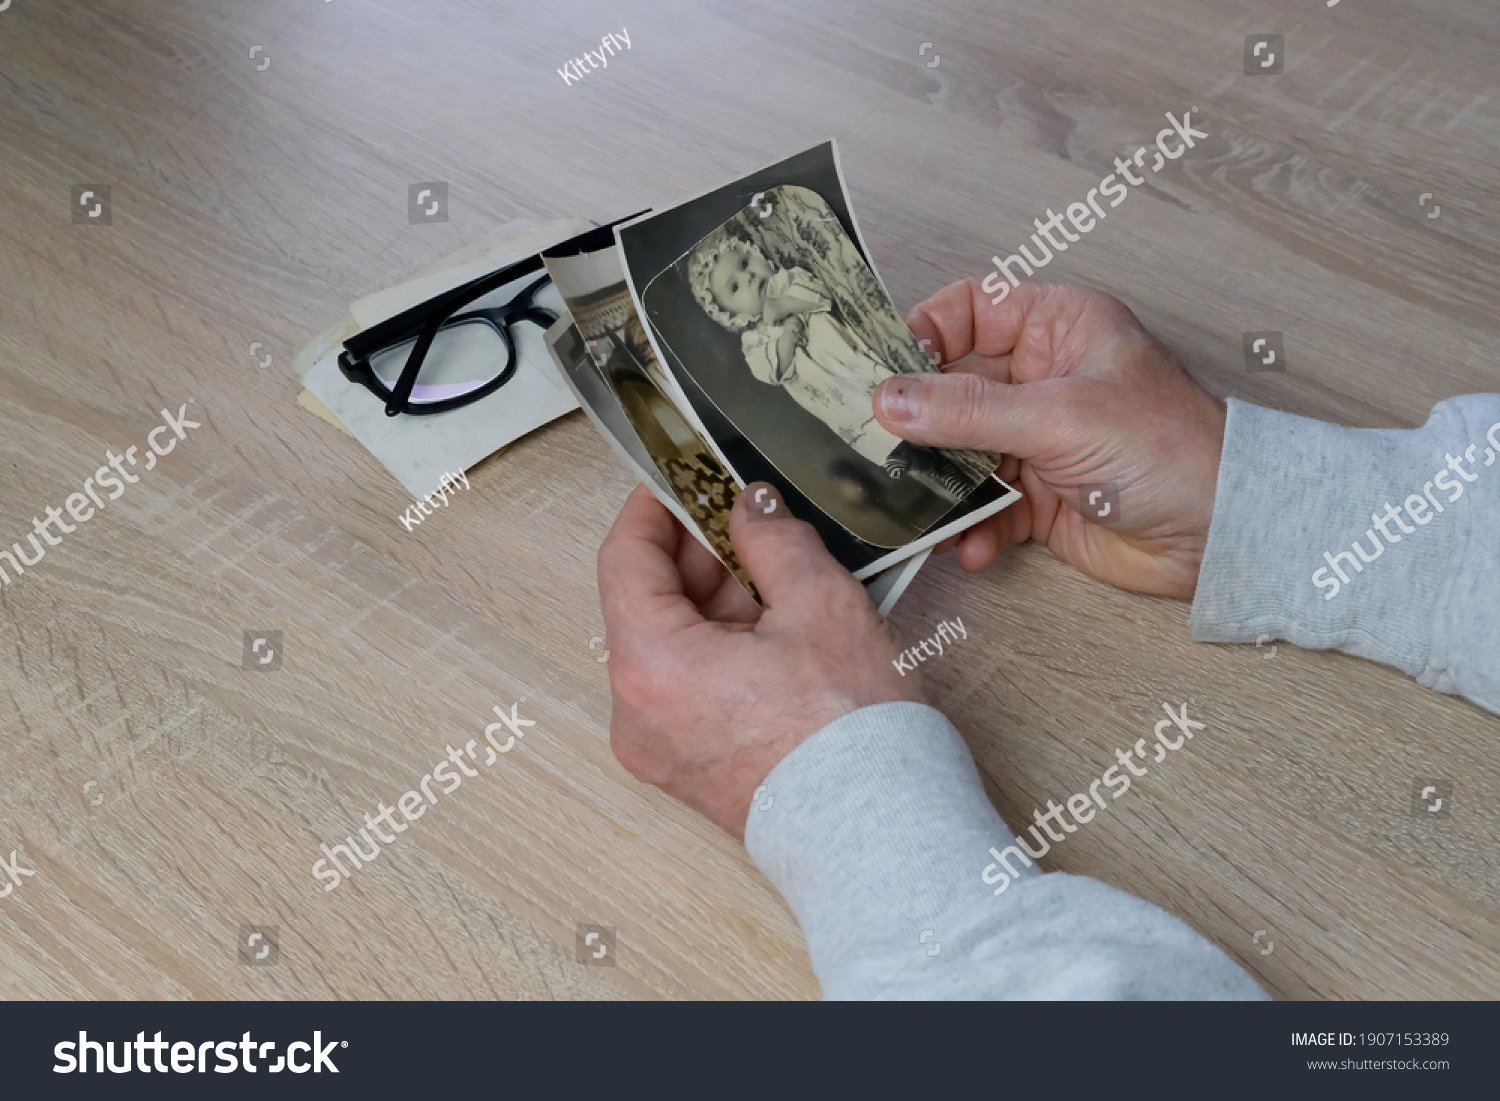 old male hands hold retro family photos over an album with vintage monochrome photographs in sepia color, genealogy concept, ancestral memory, family tree, childhood memories #1907153389